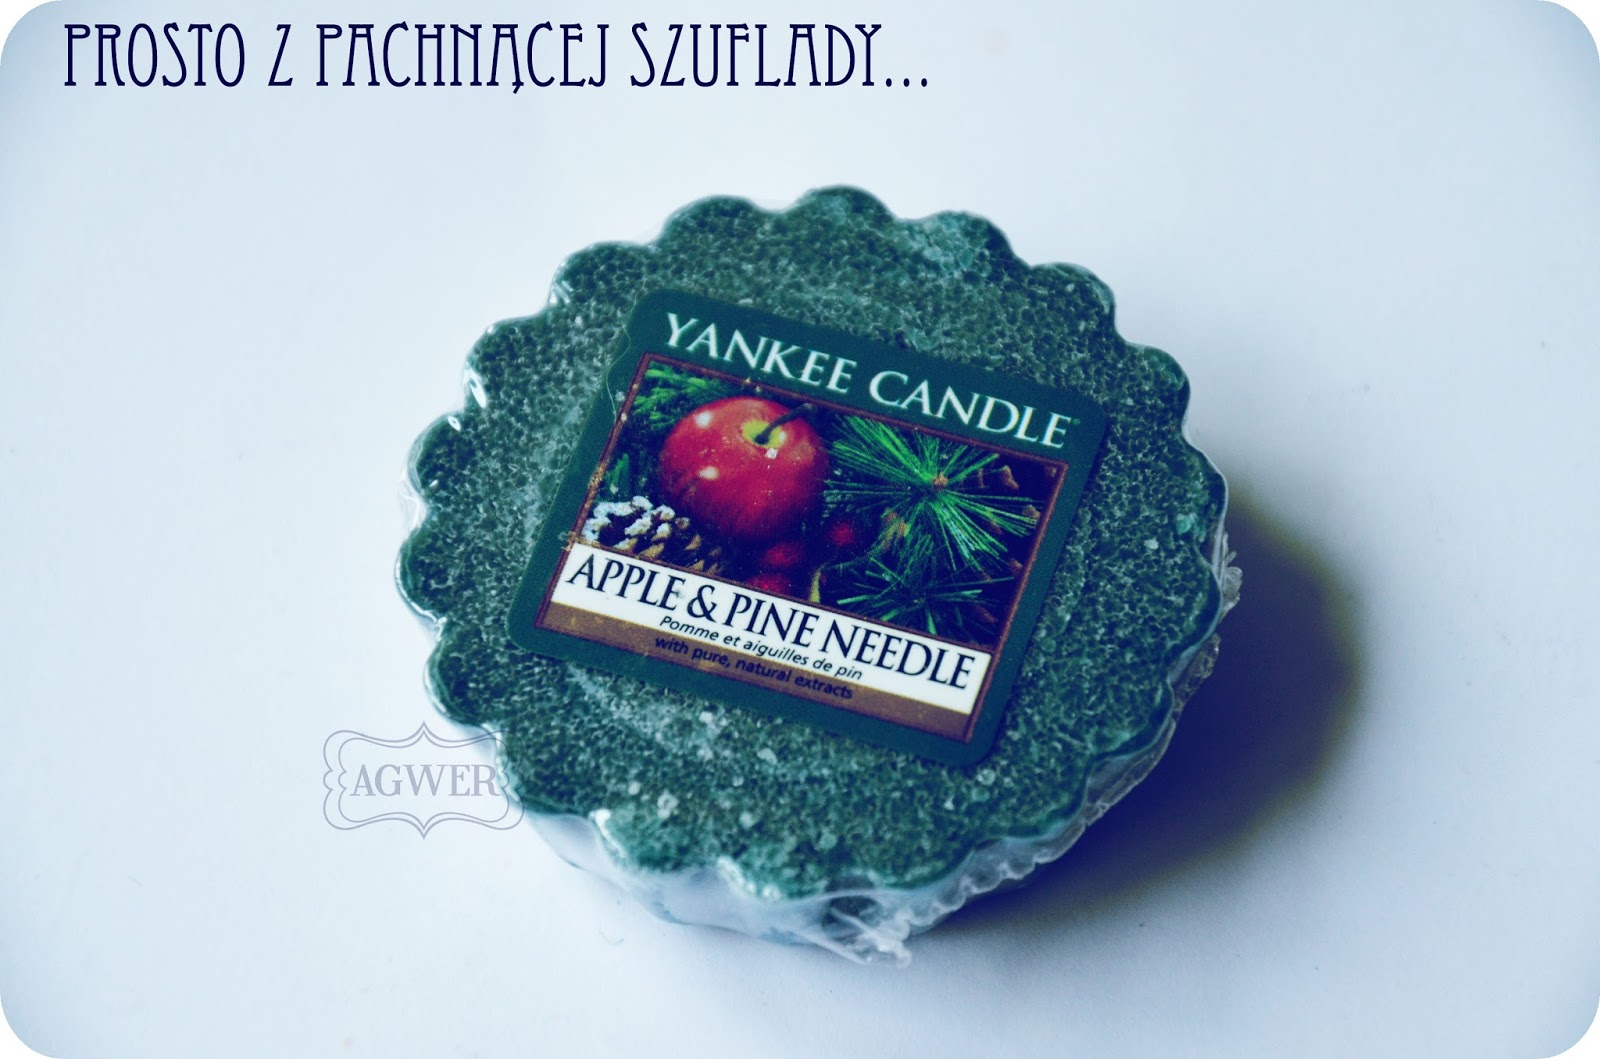 apple-and-pine-needle-yankee-candle